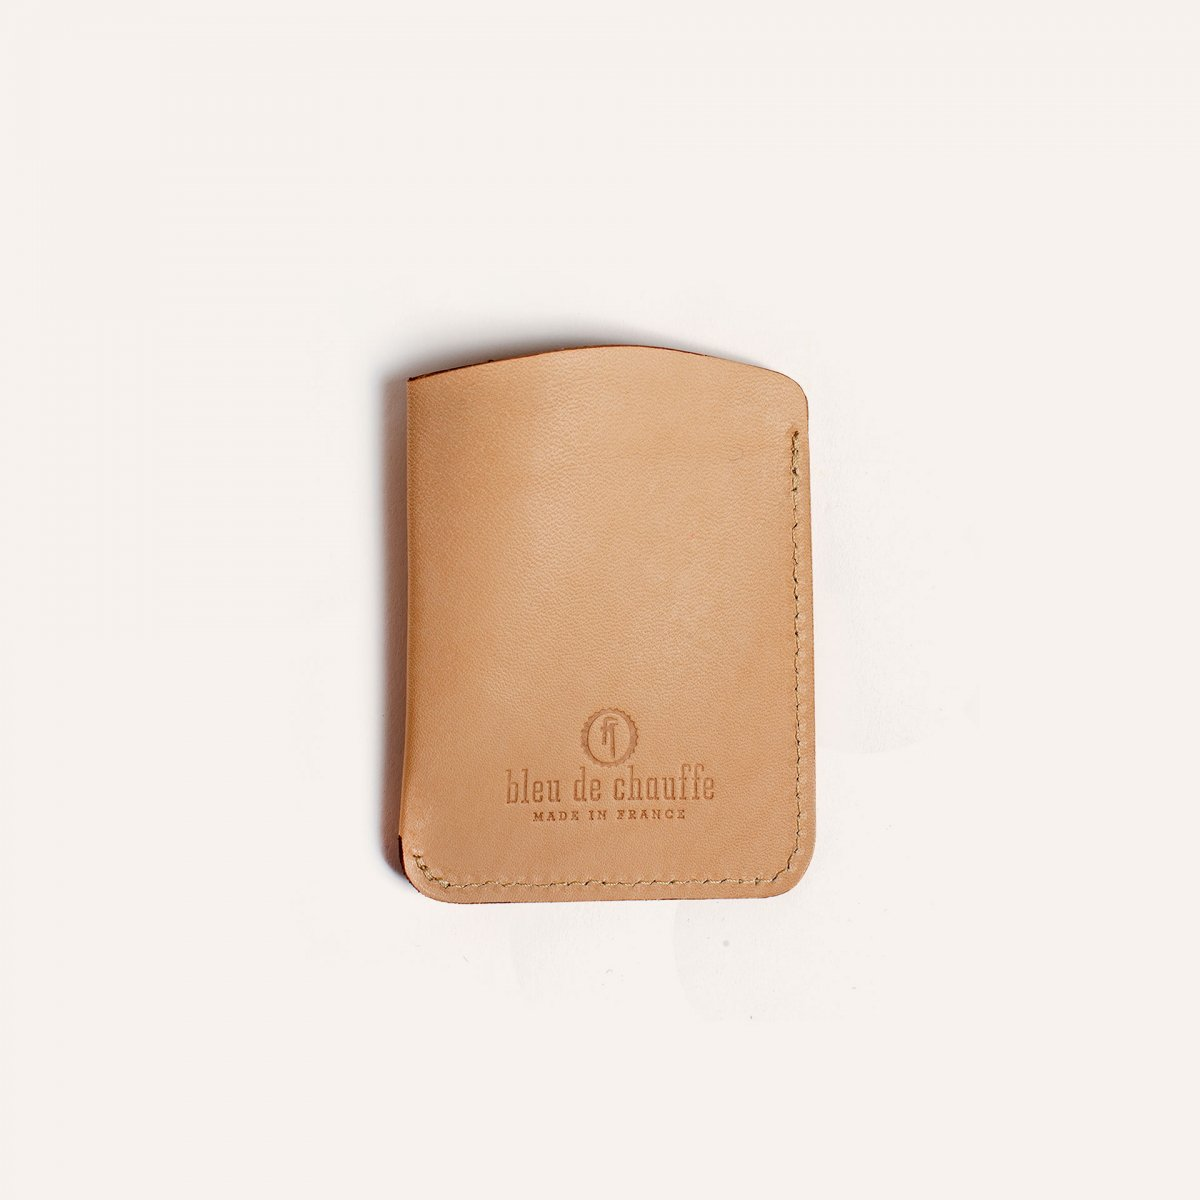 Intro business card holder - Natural (image n°1)